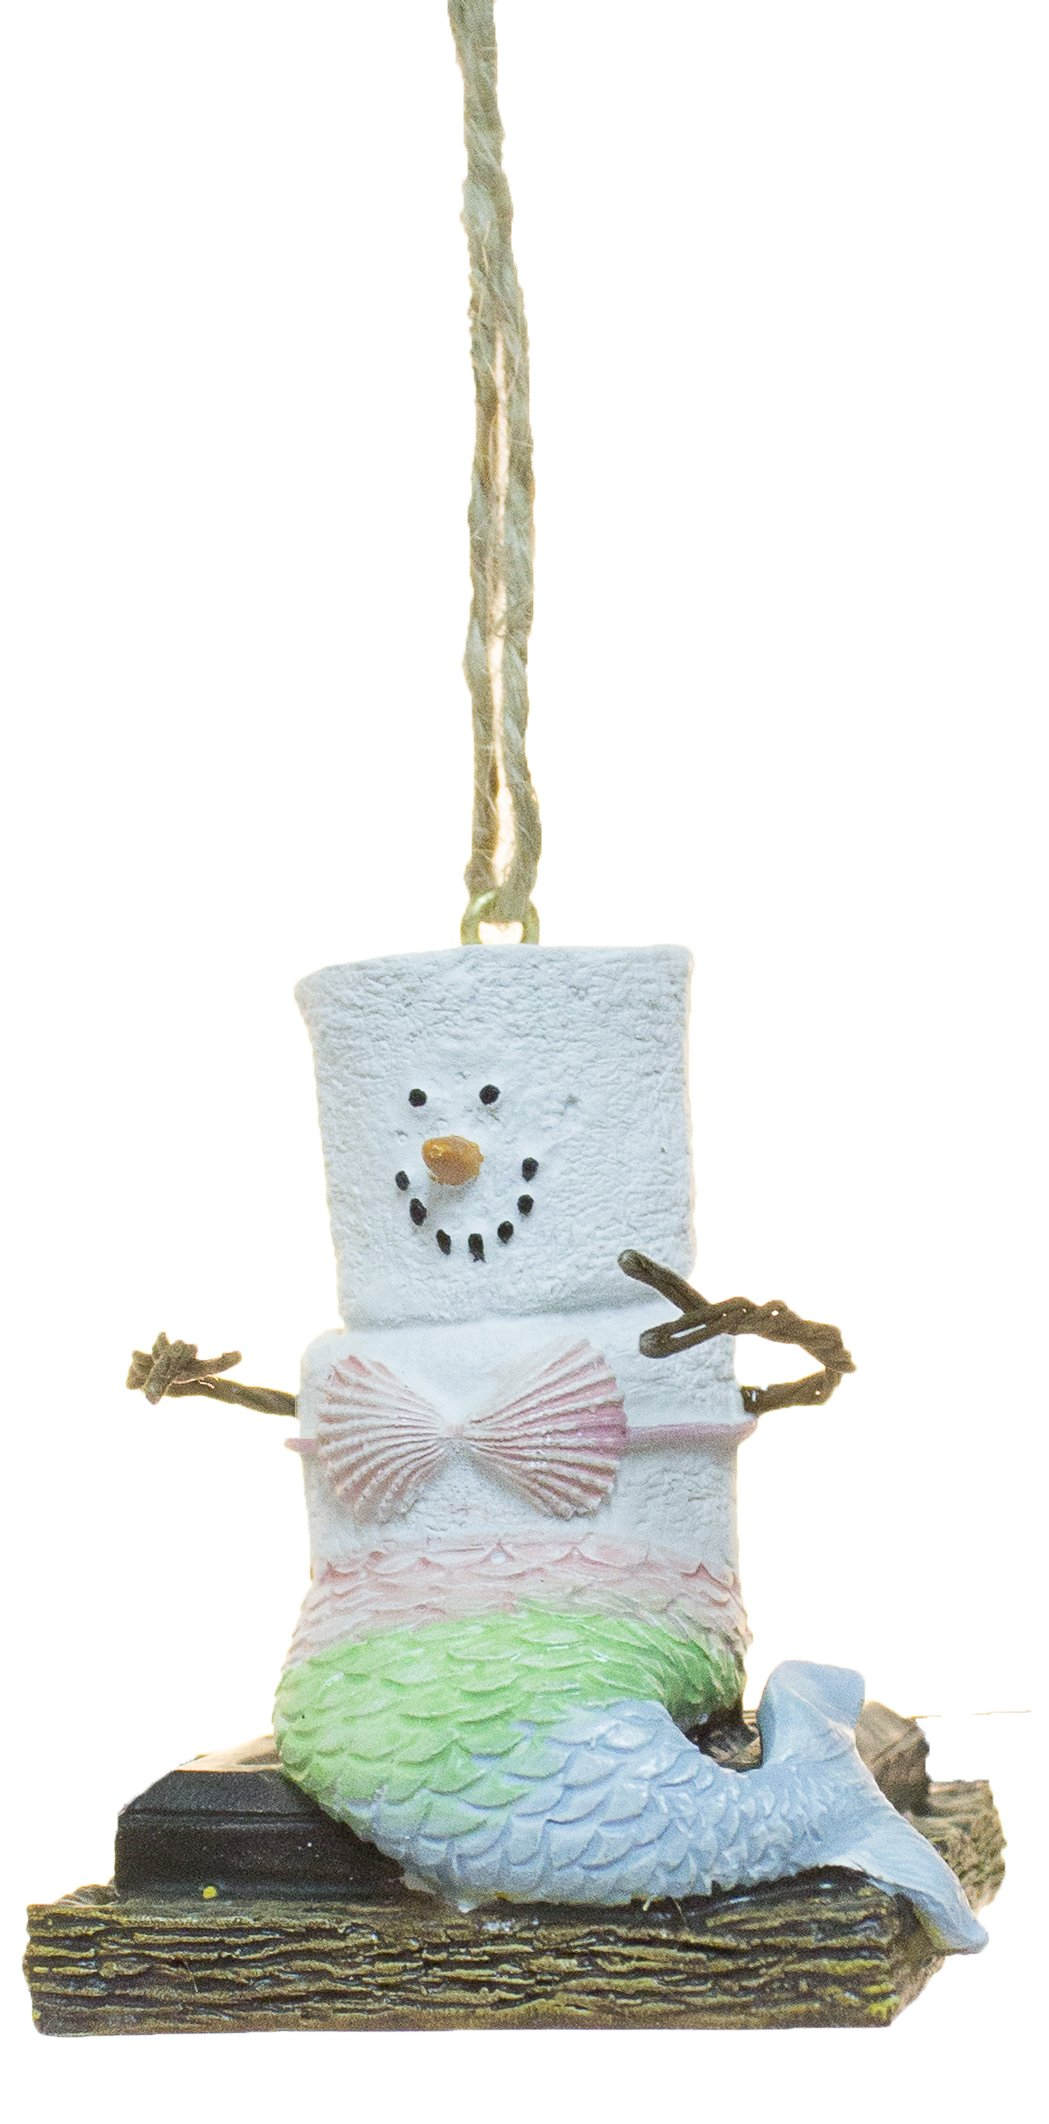 S'mores Mermaid Christmas/Everyday Ornament by Midwest-CBK